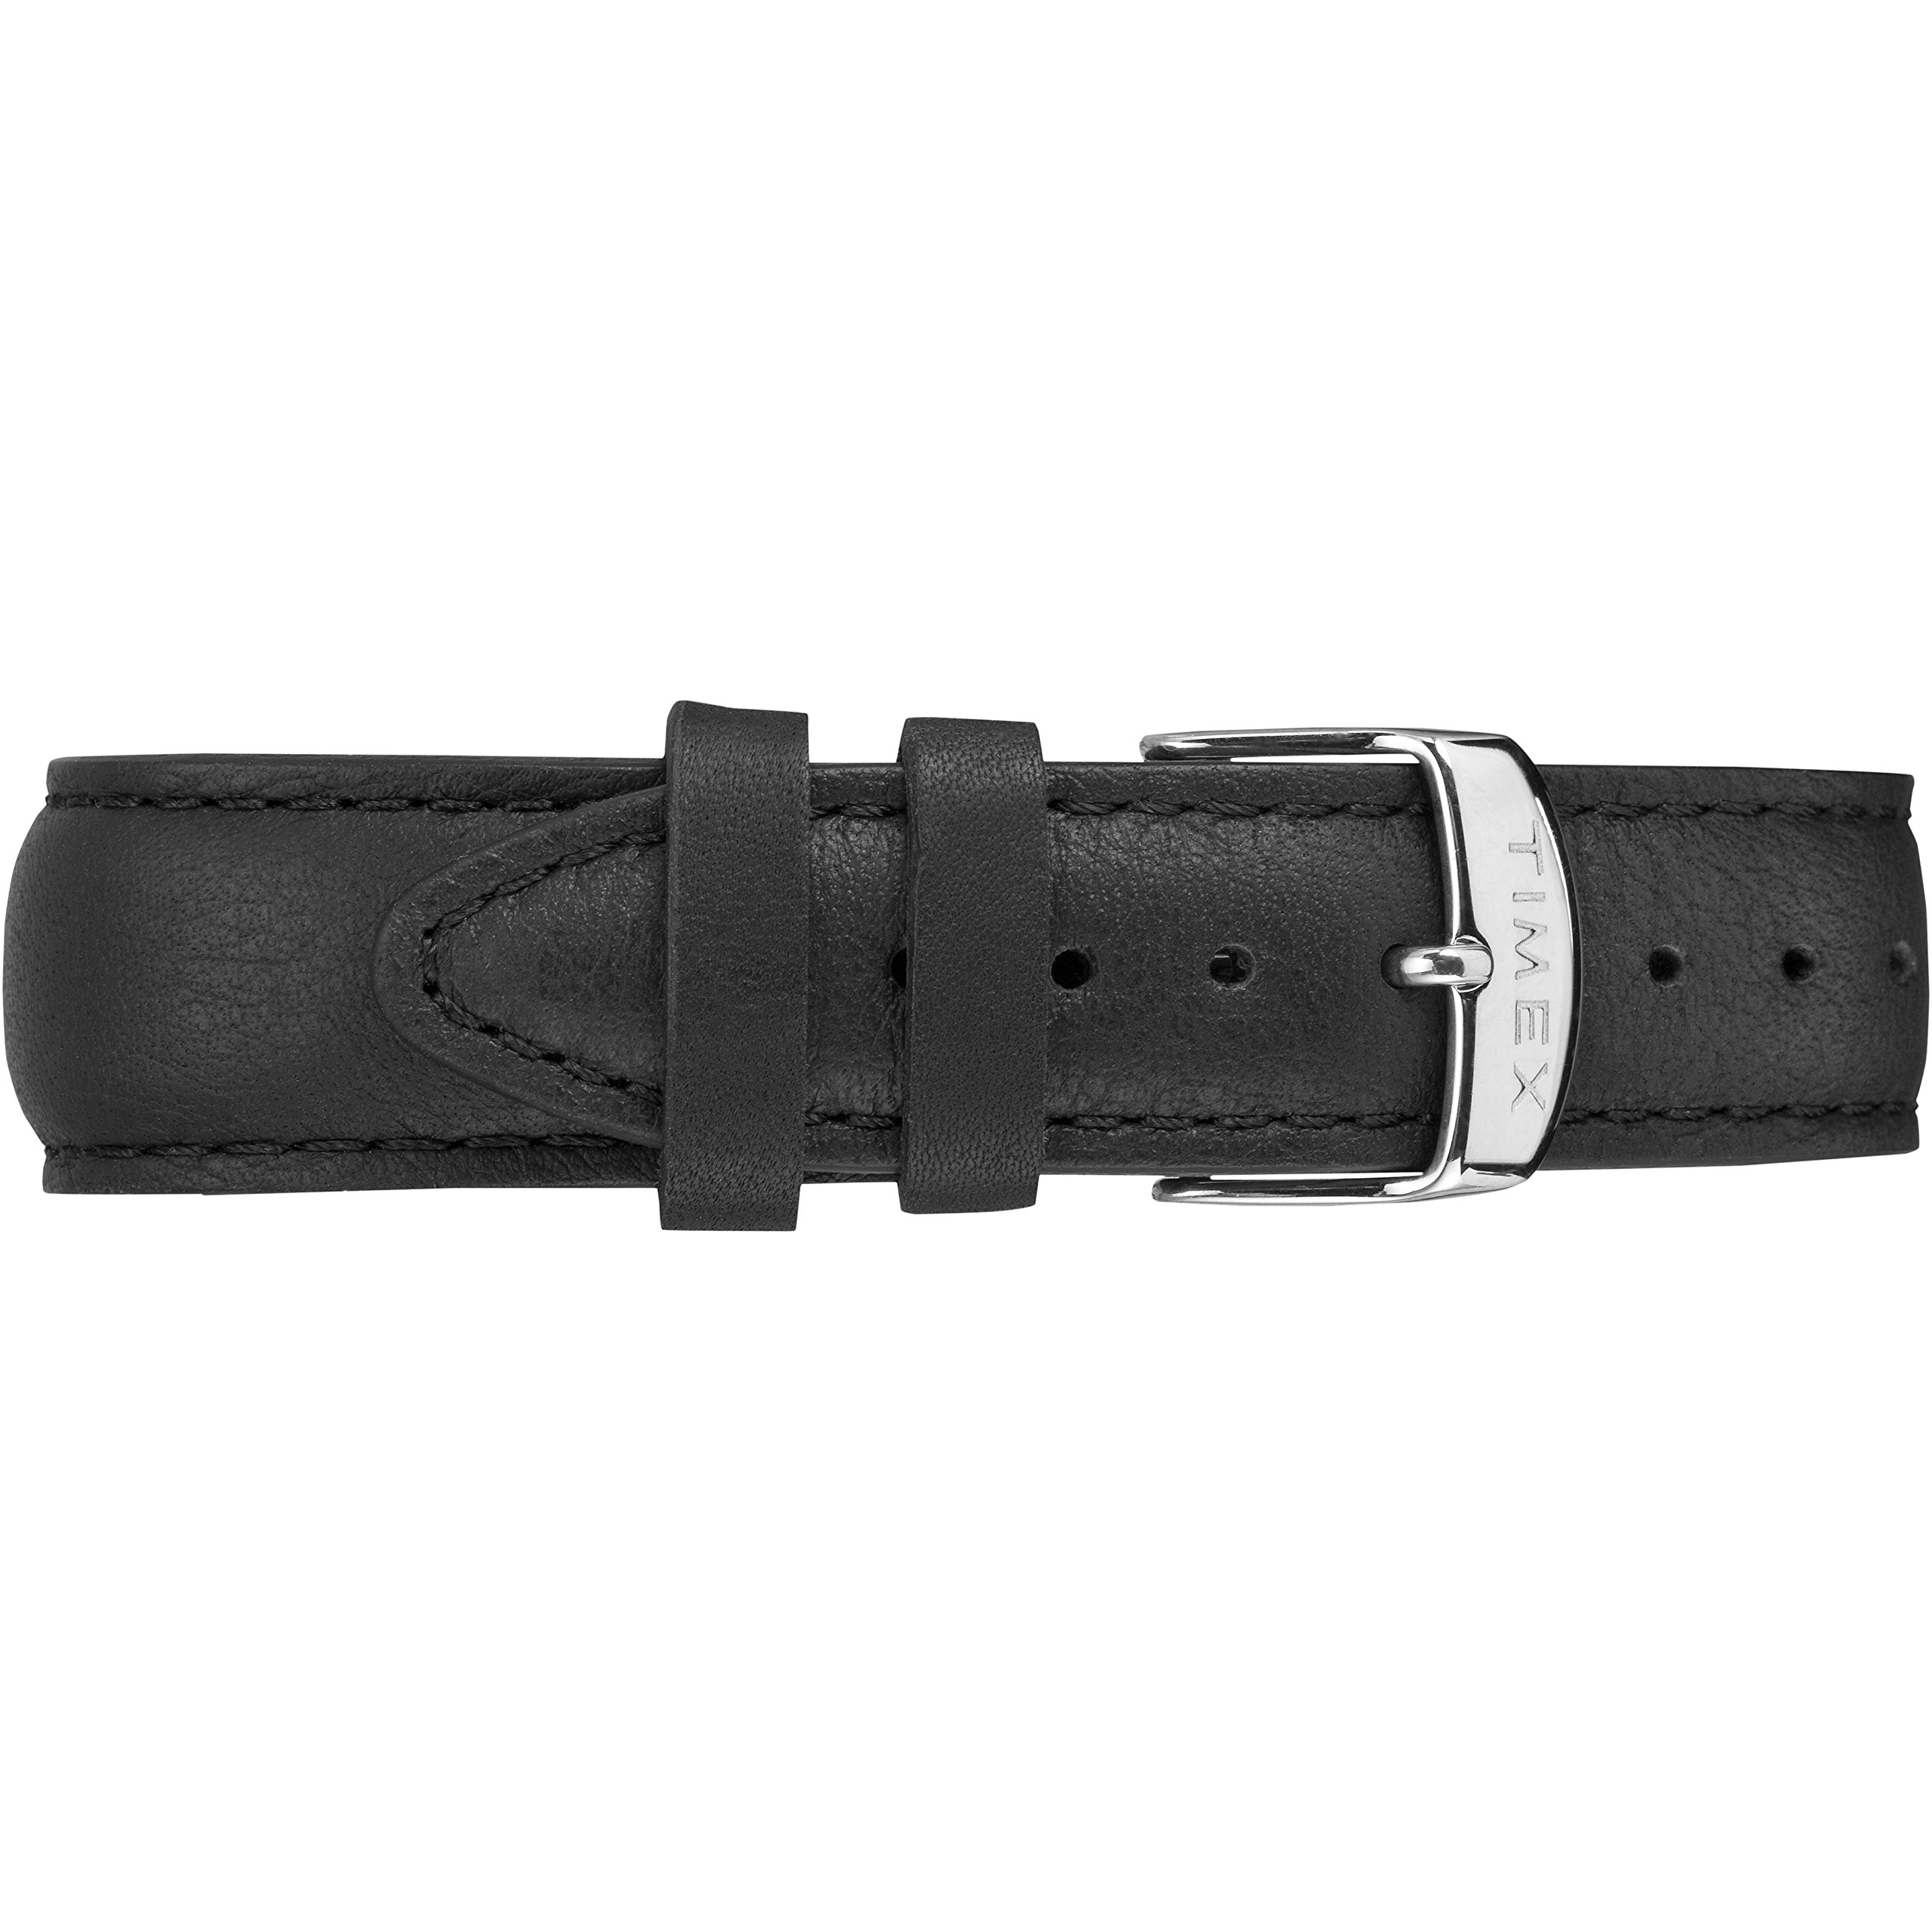 Timex Men's TW2R29800 Highland Street Black Leather Strap Watch by Timex (Image #2)